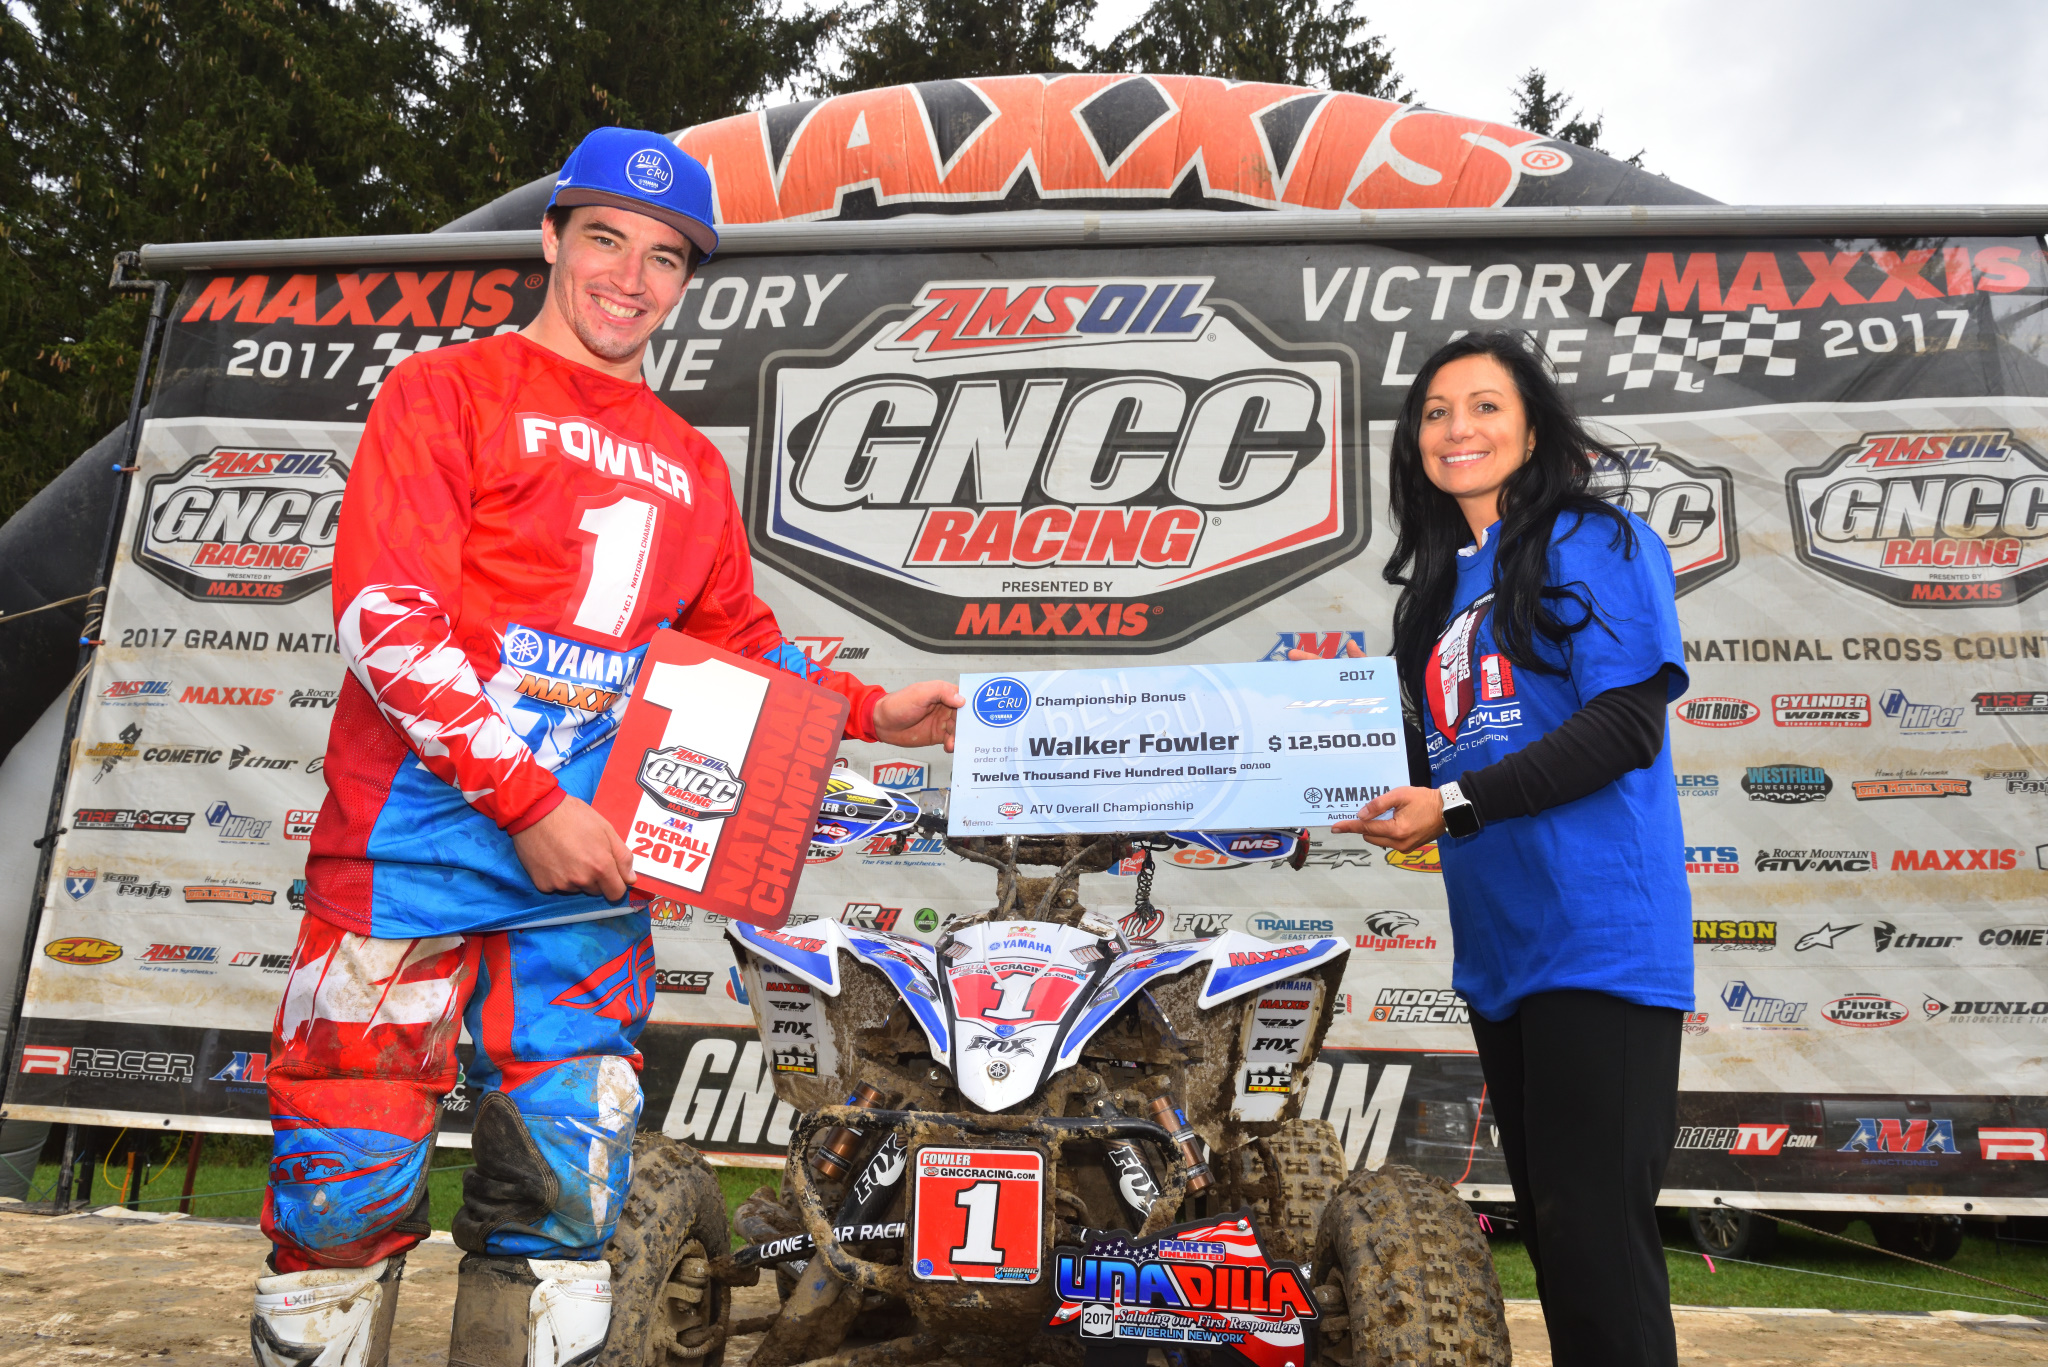 Yamaha's Walker Fowler Clinches GNCC Championship